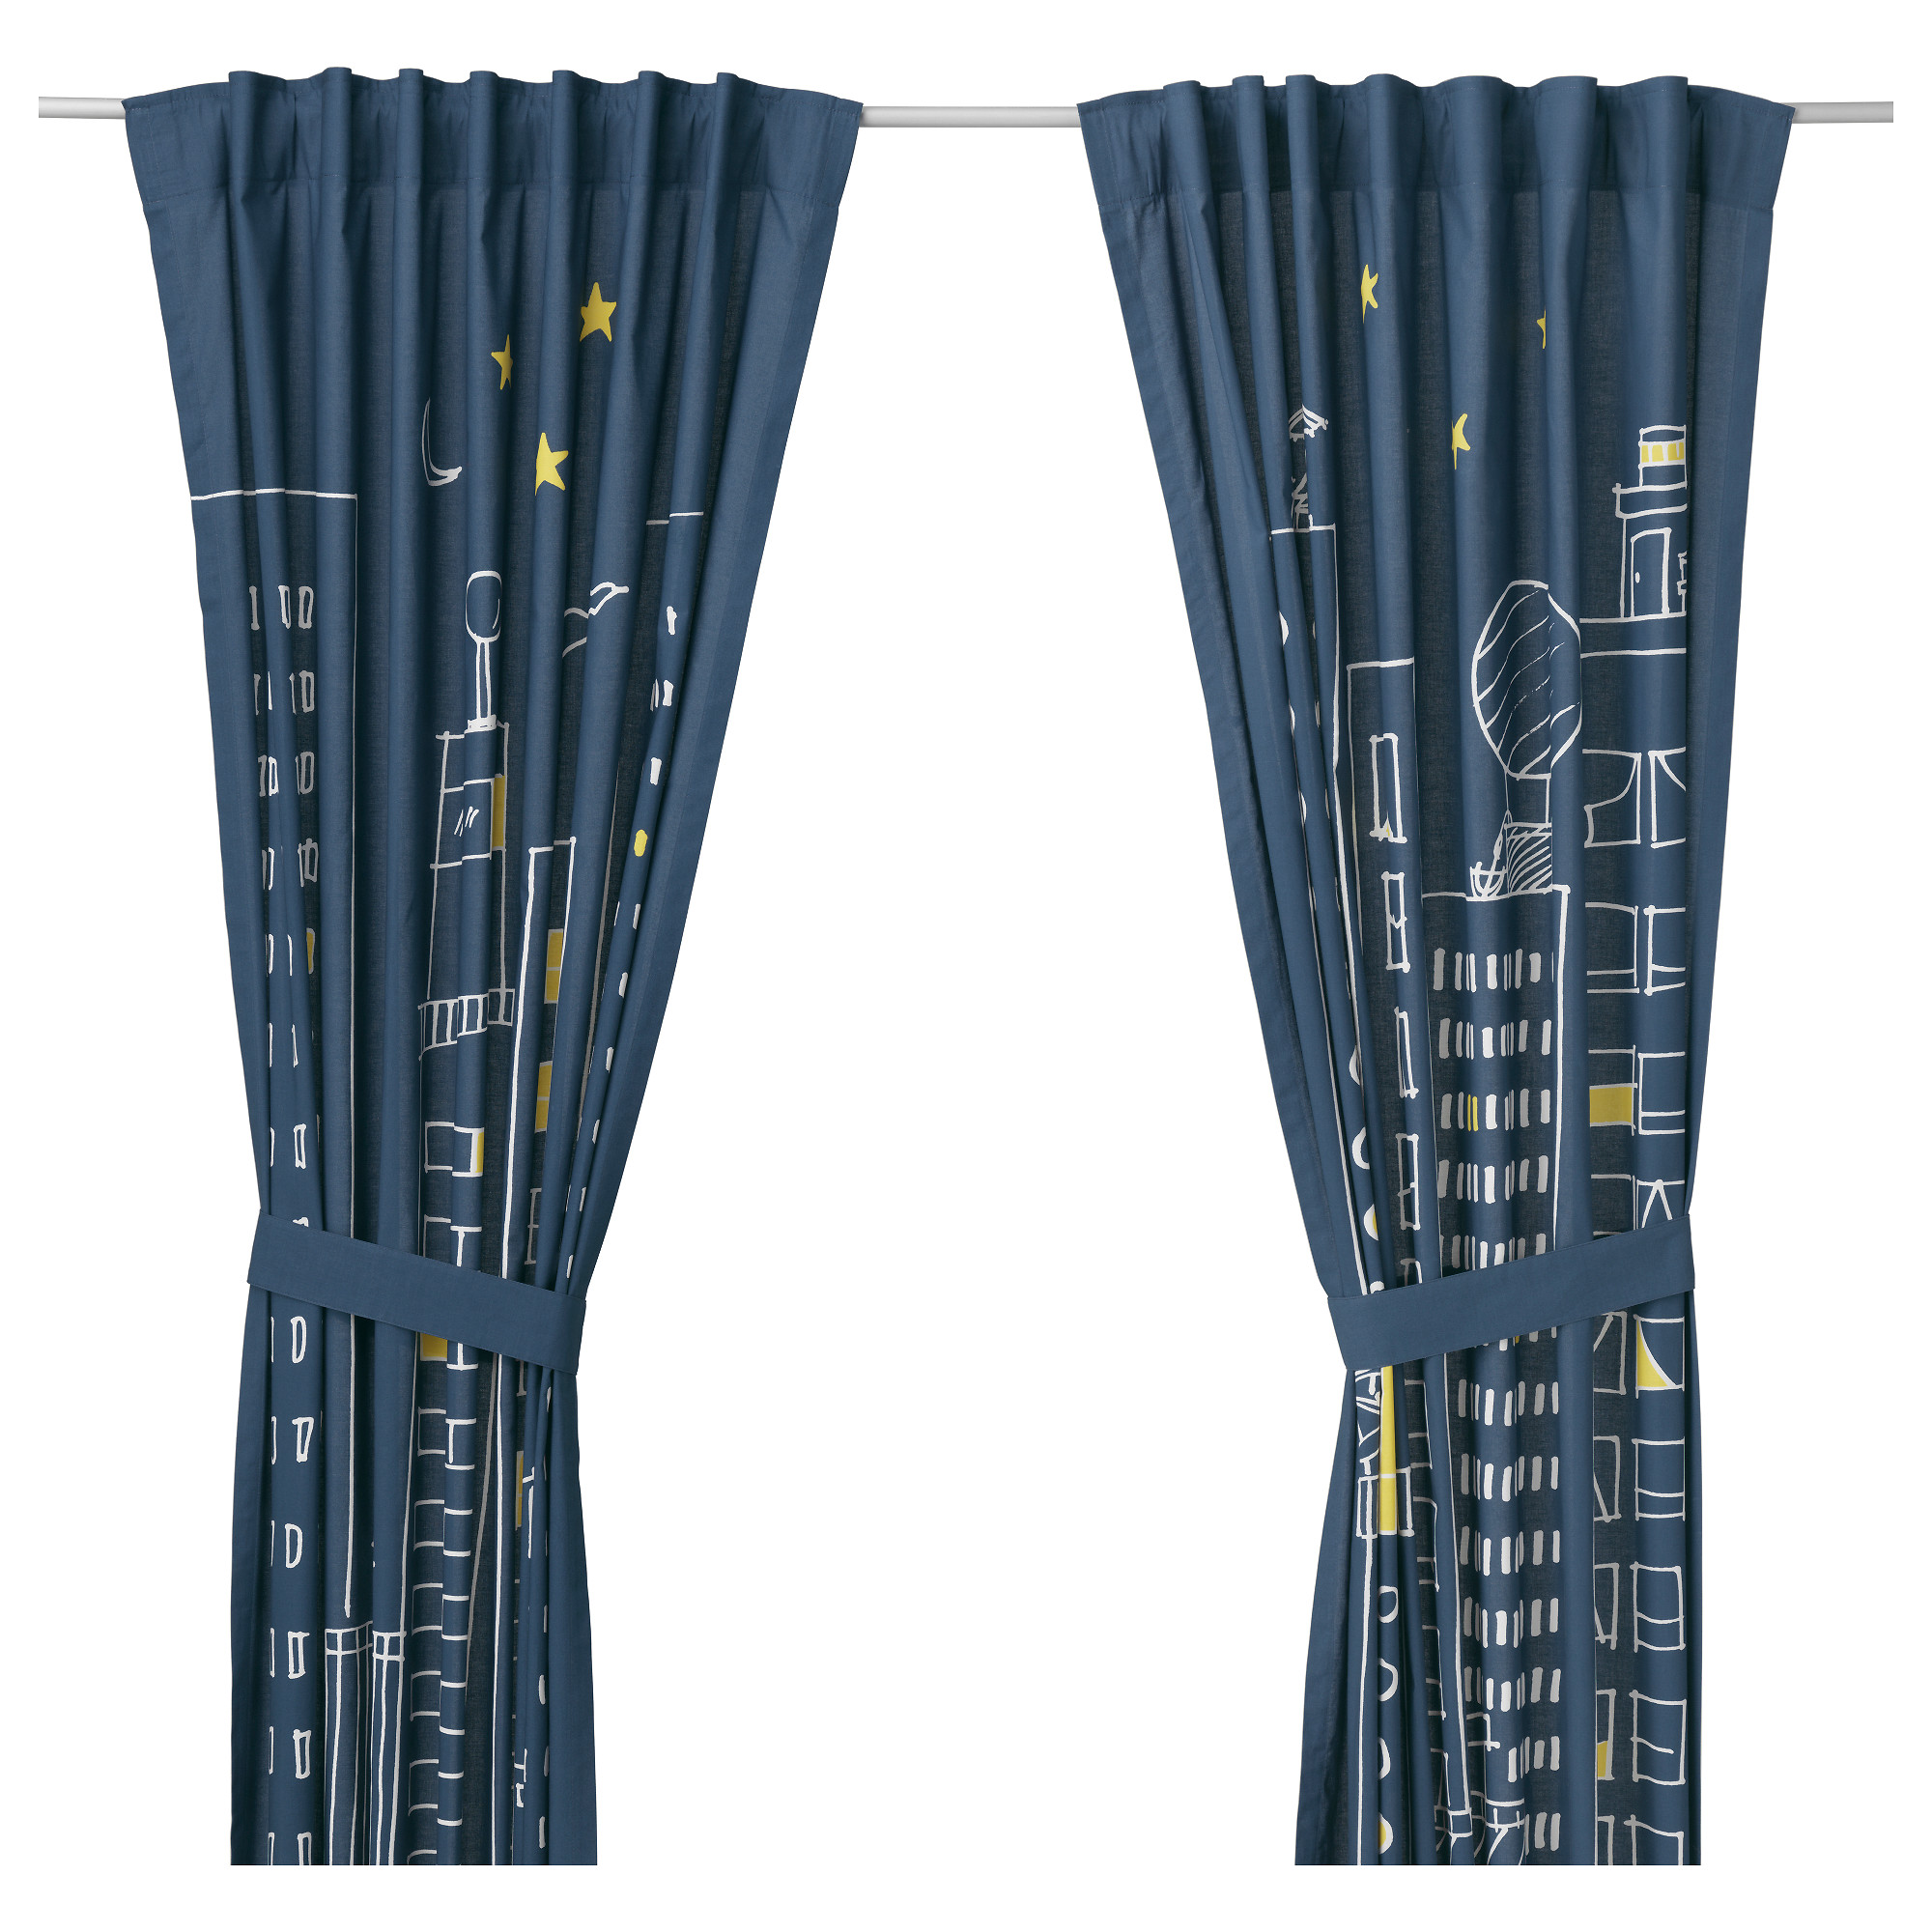 Beaded door curtains for kids - Hemmahos Curtains With Tie Backs 1 Pair Dark Blue Length 98